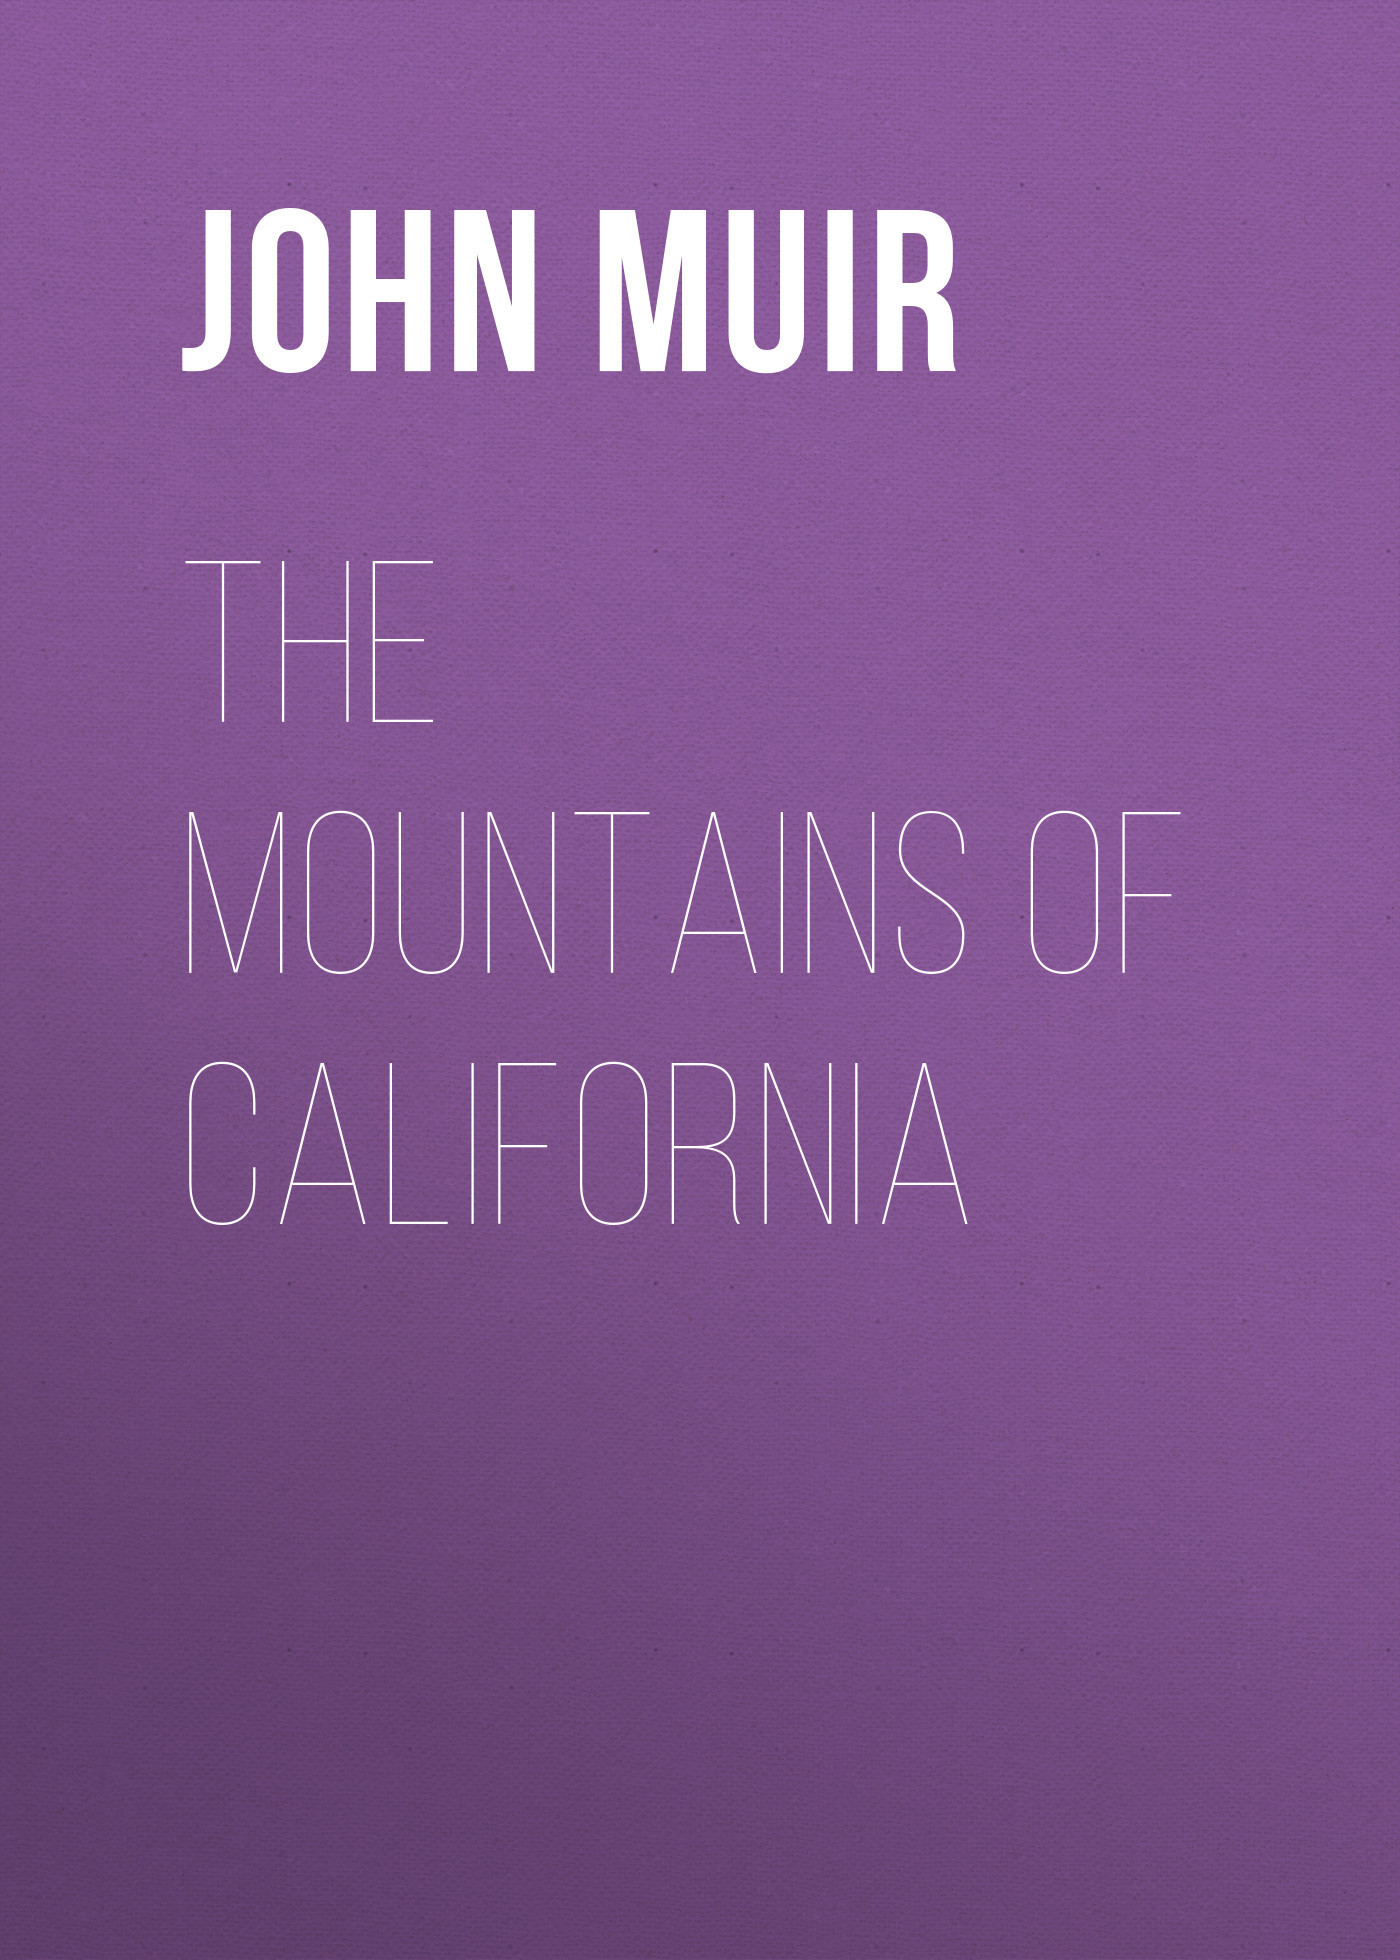 John Muir The Mountains of California одежда из кожи out of the mountains